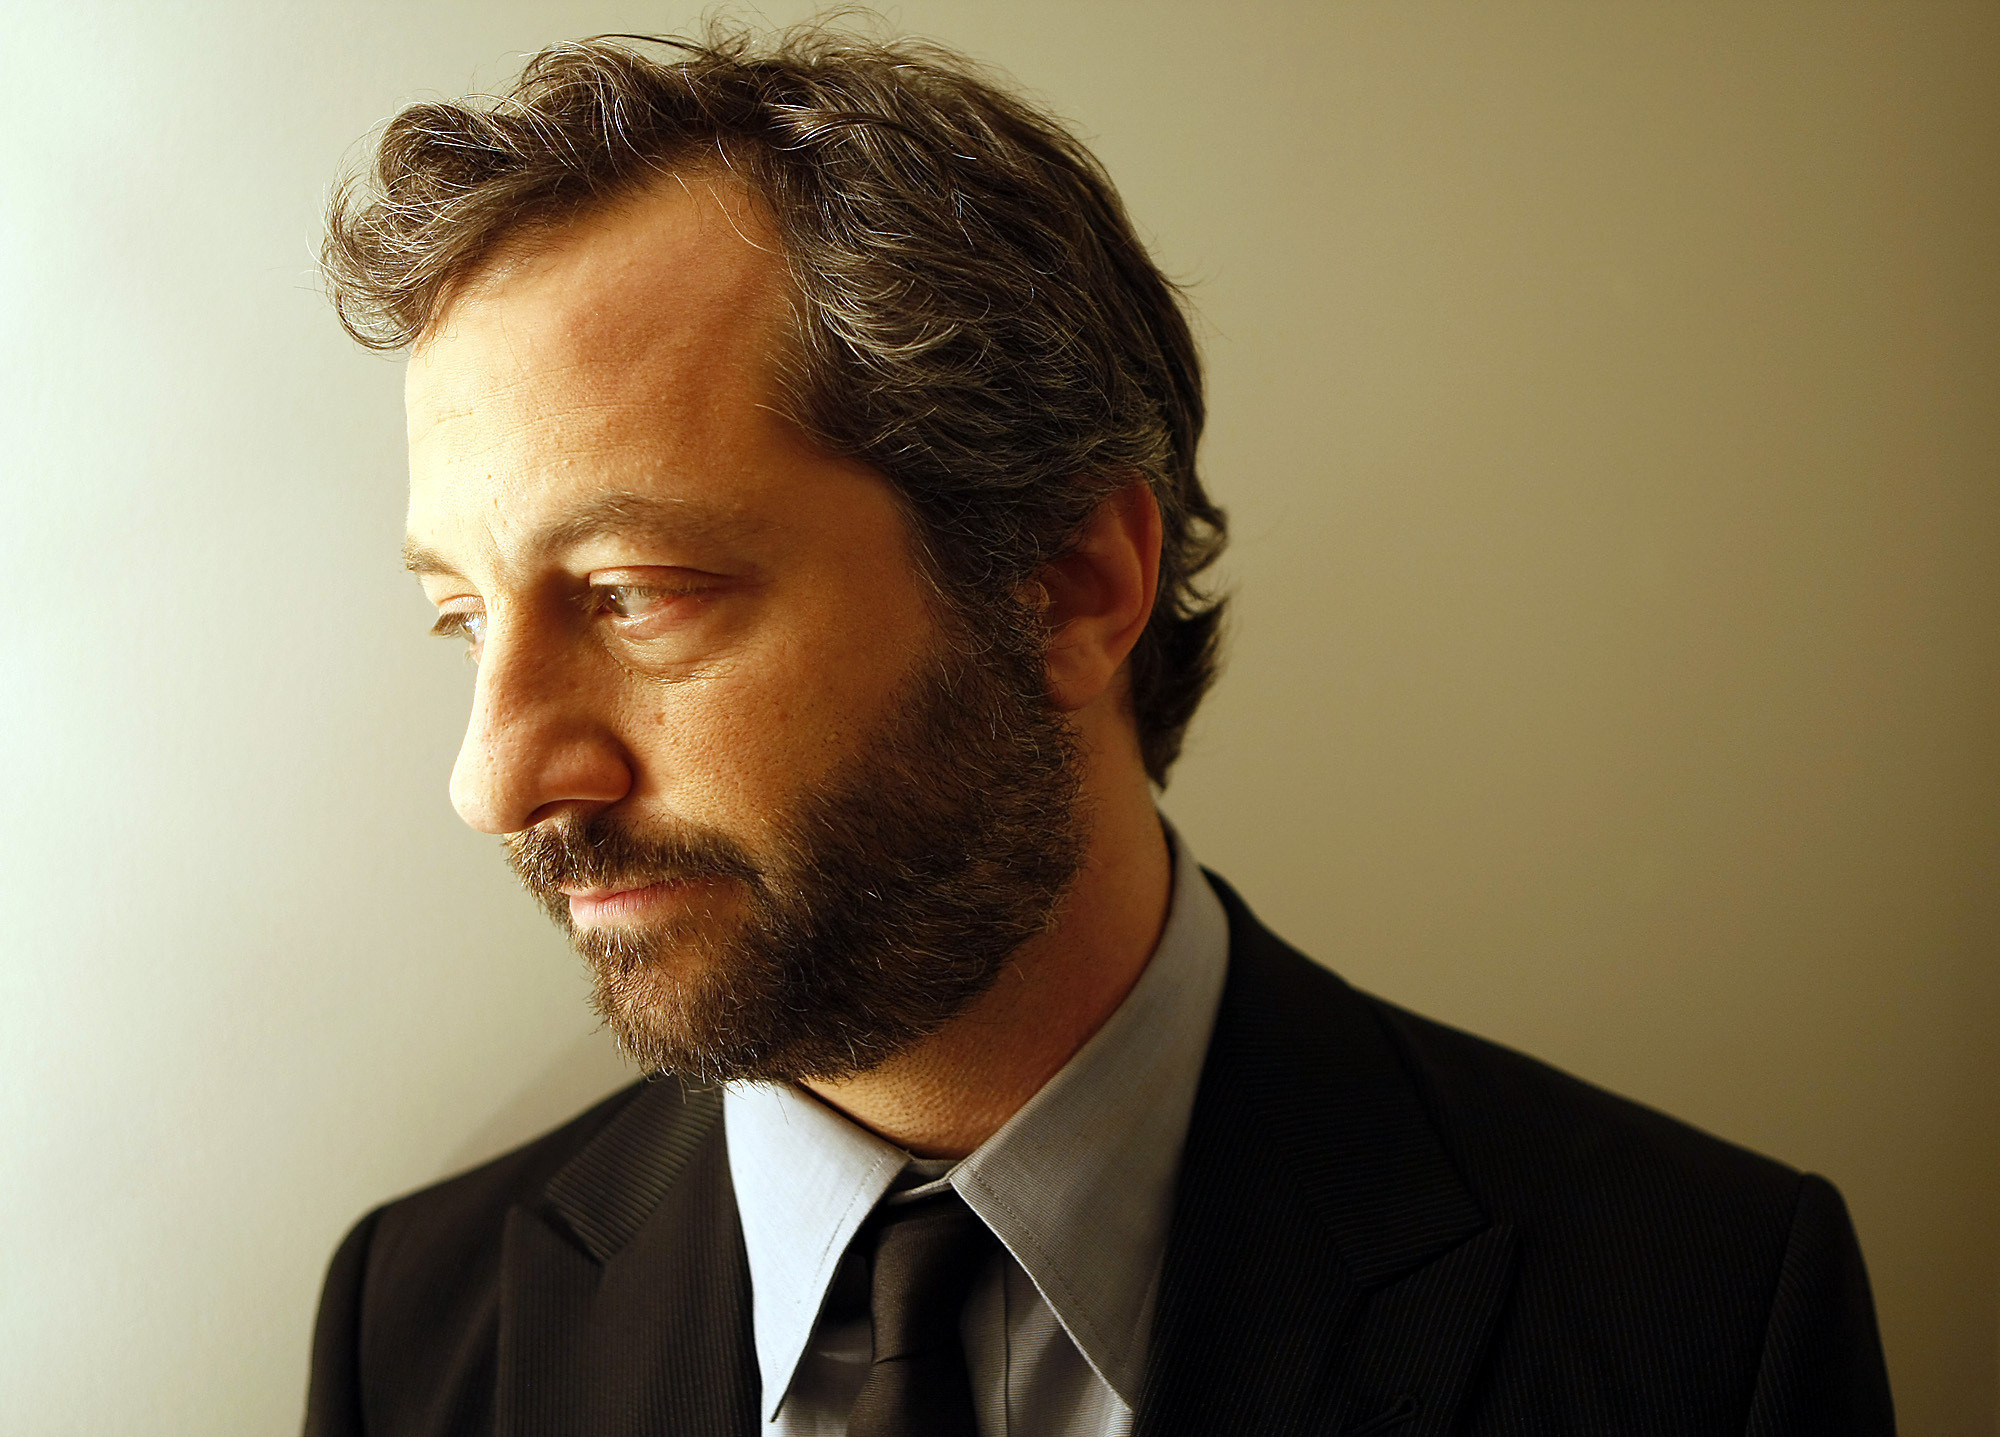 Judd Apatow seasons of the Judd Apatow